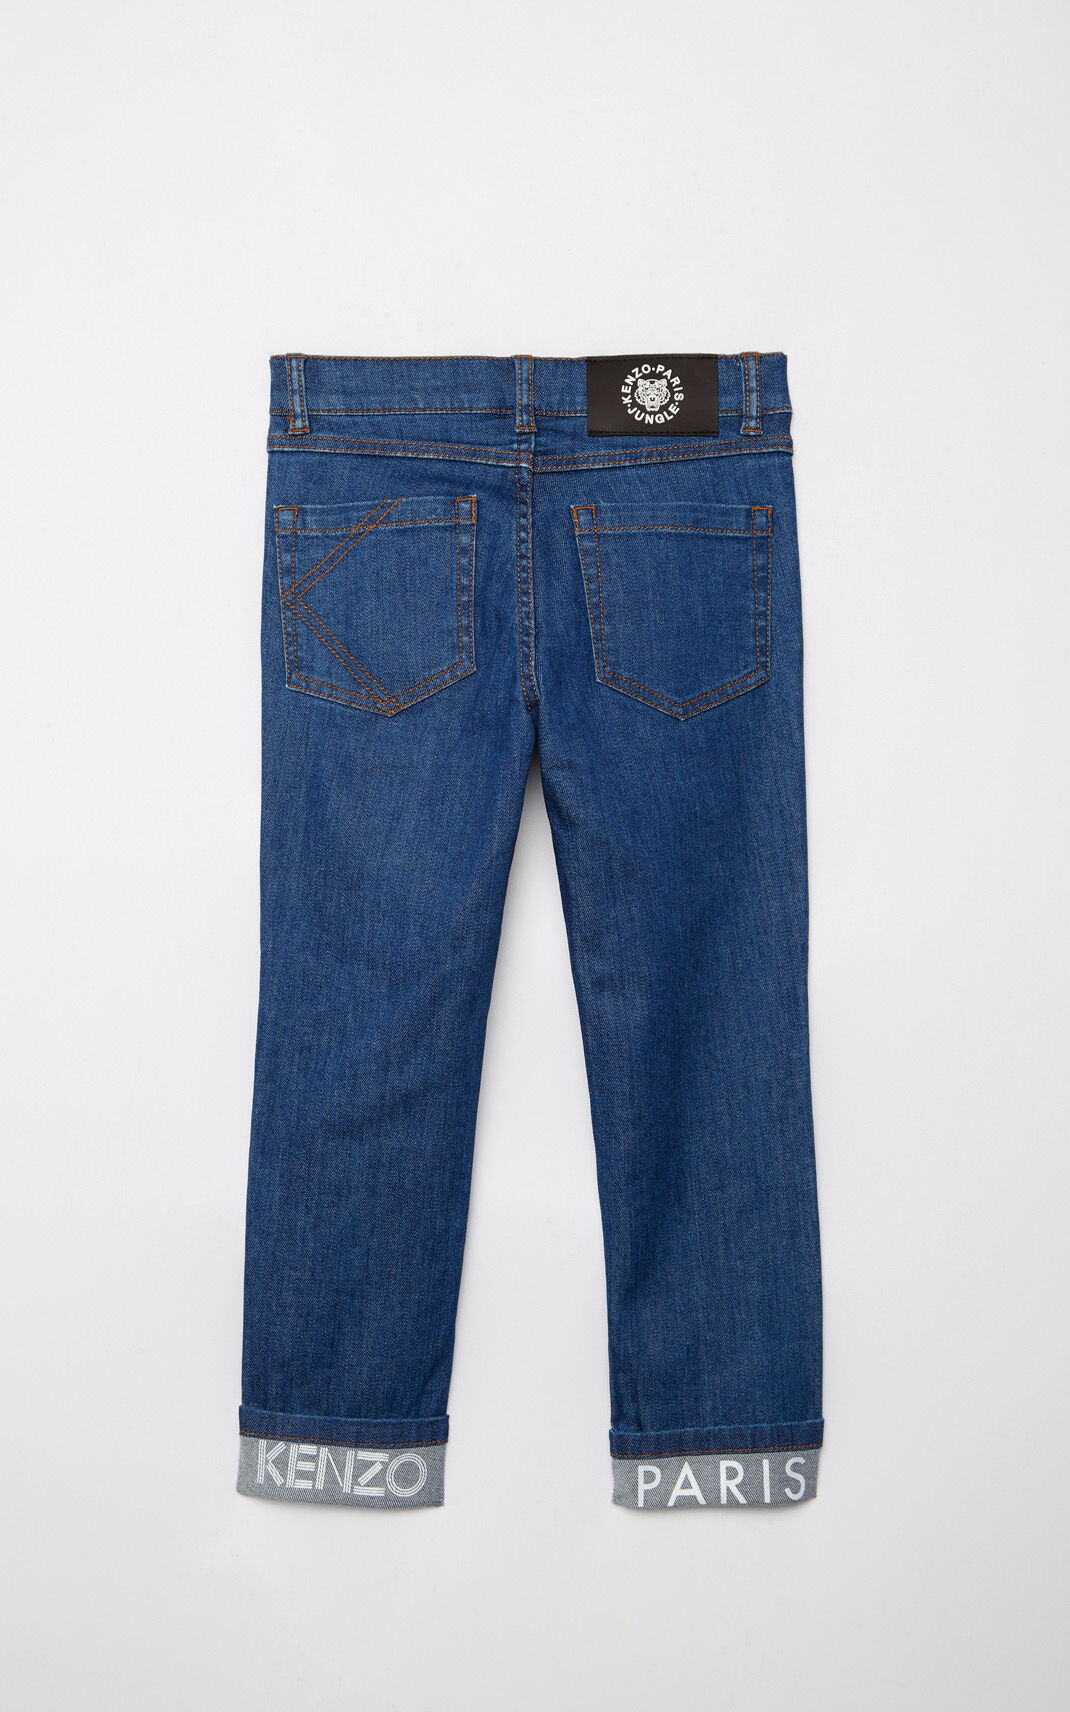 FRENCH BLUE KENZO logo skinny jeans for men